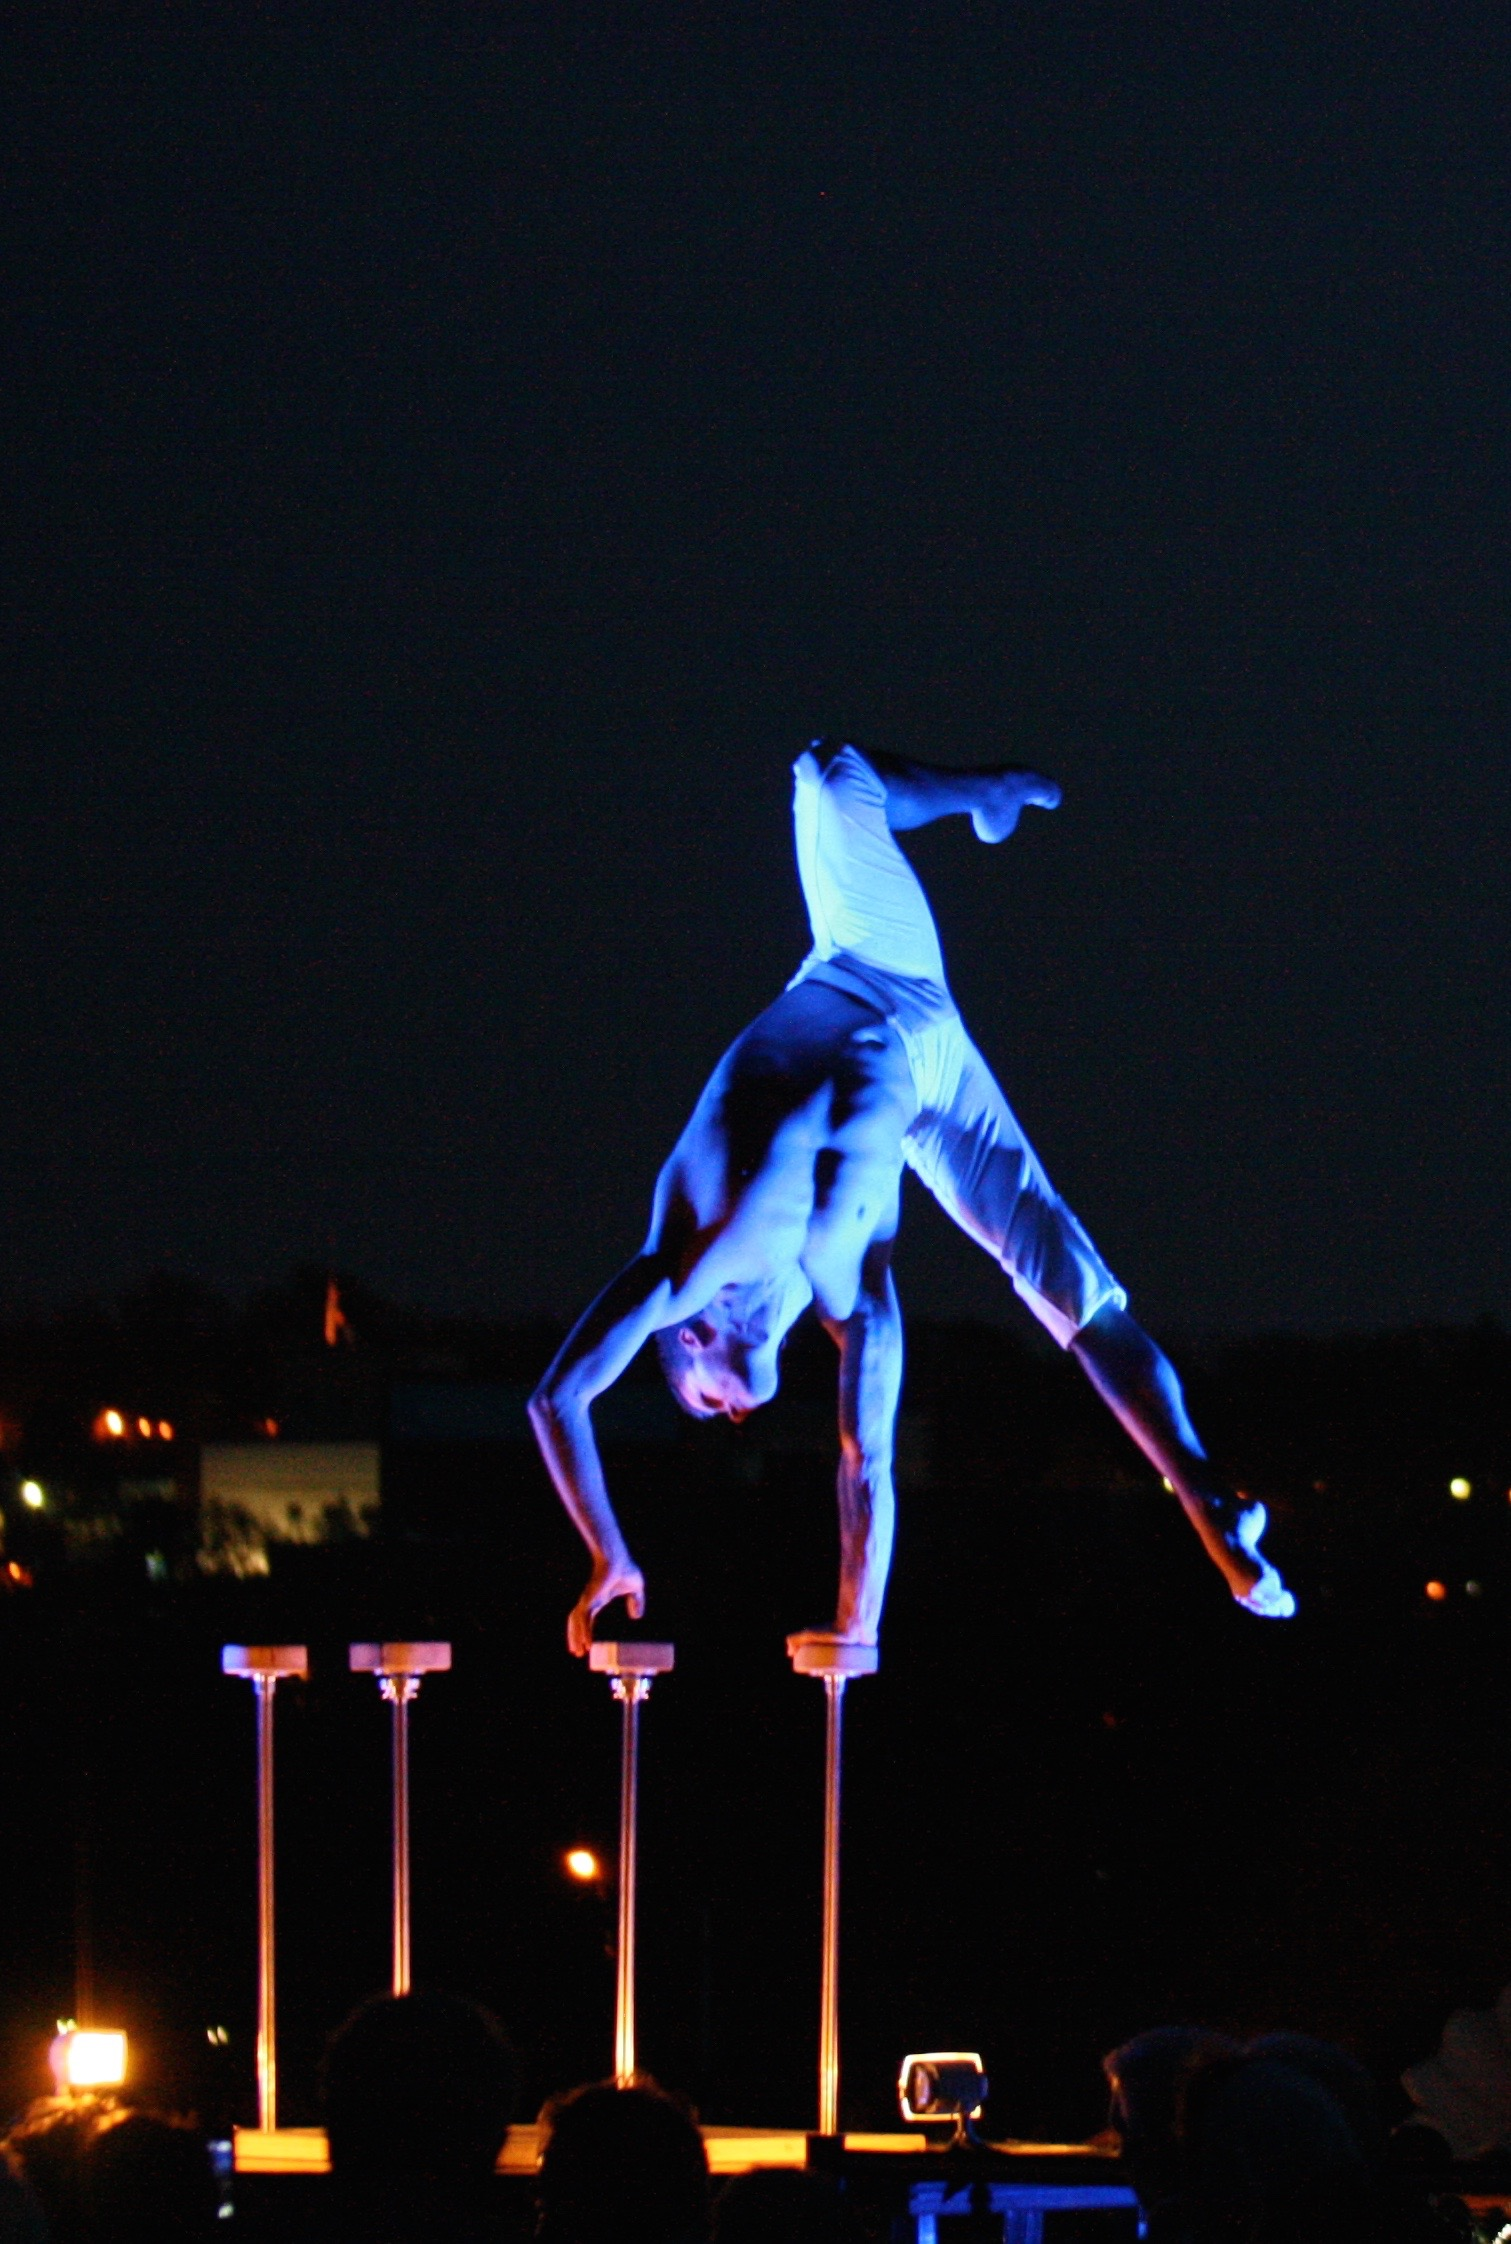 A Quixotic Fusion performer stretches above the treetops of Kansas City.